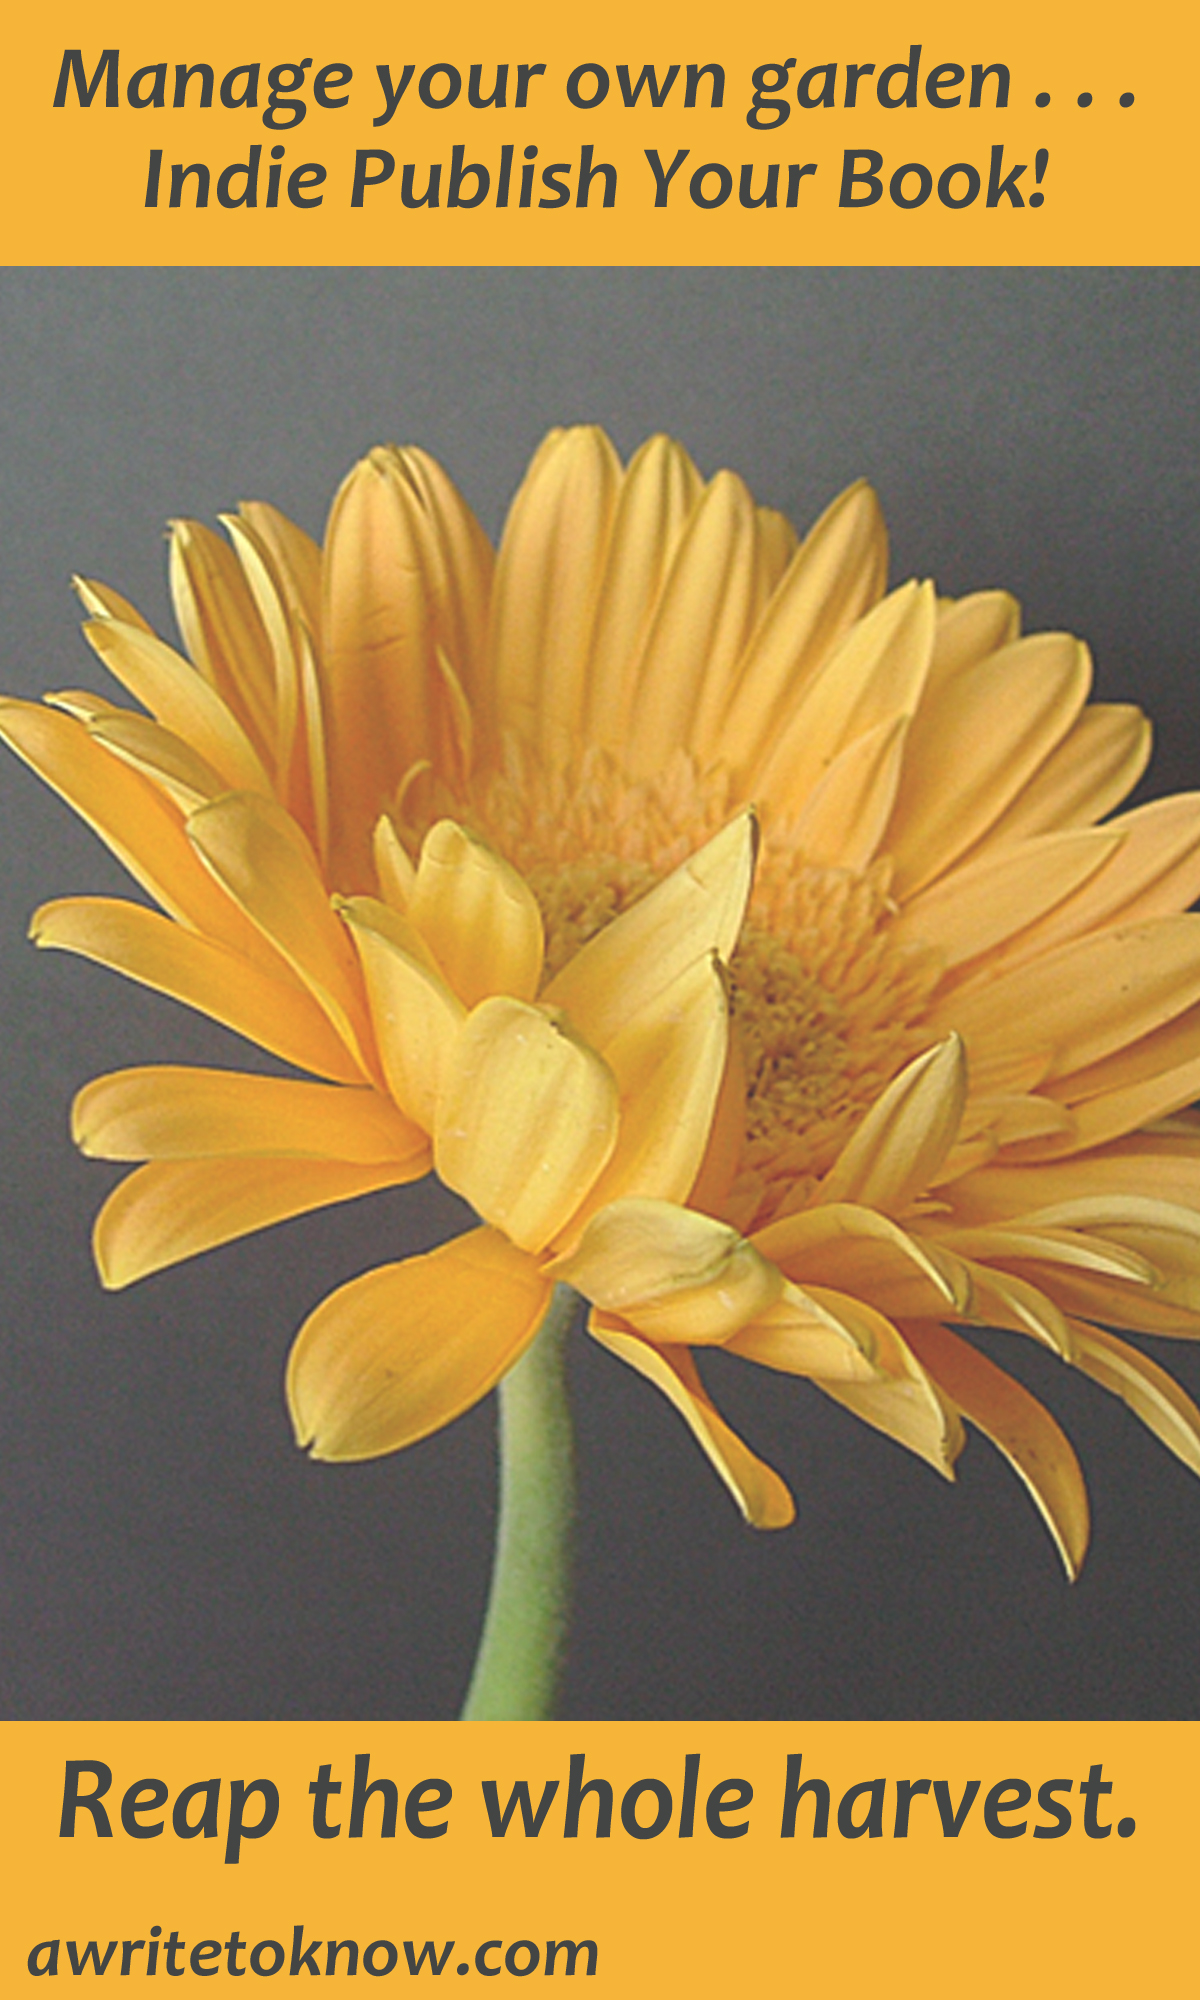 """Bright golden flower on dark brown background with words saying, """" Words that say """"How to get your book written sans struggle.""""Manage your own garden. Indie Publish Your Book. Reap the whole harvest."""""""